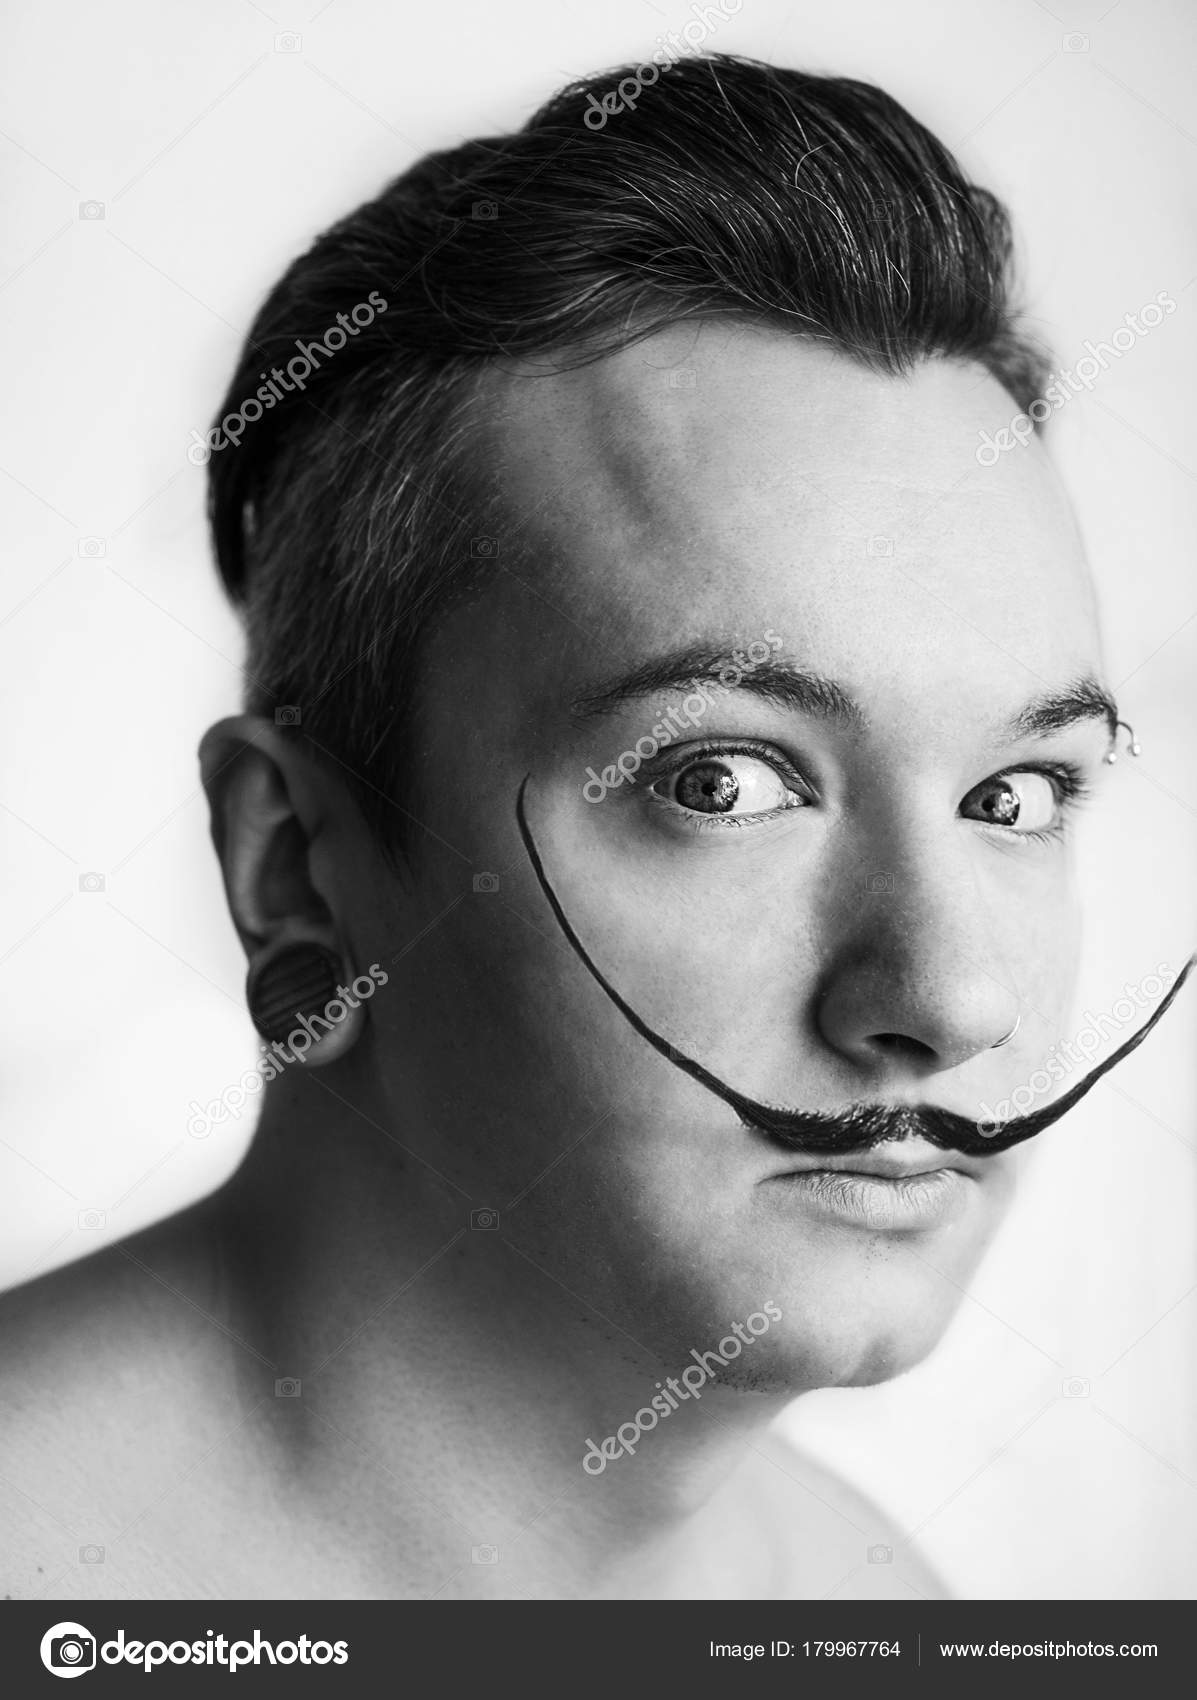 White Guy Mustache Pompadour Hairstyle Depicts Salvador Dali Stock